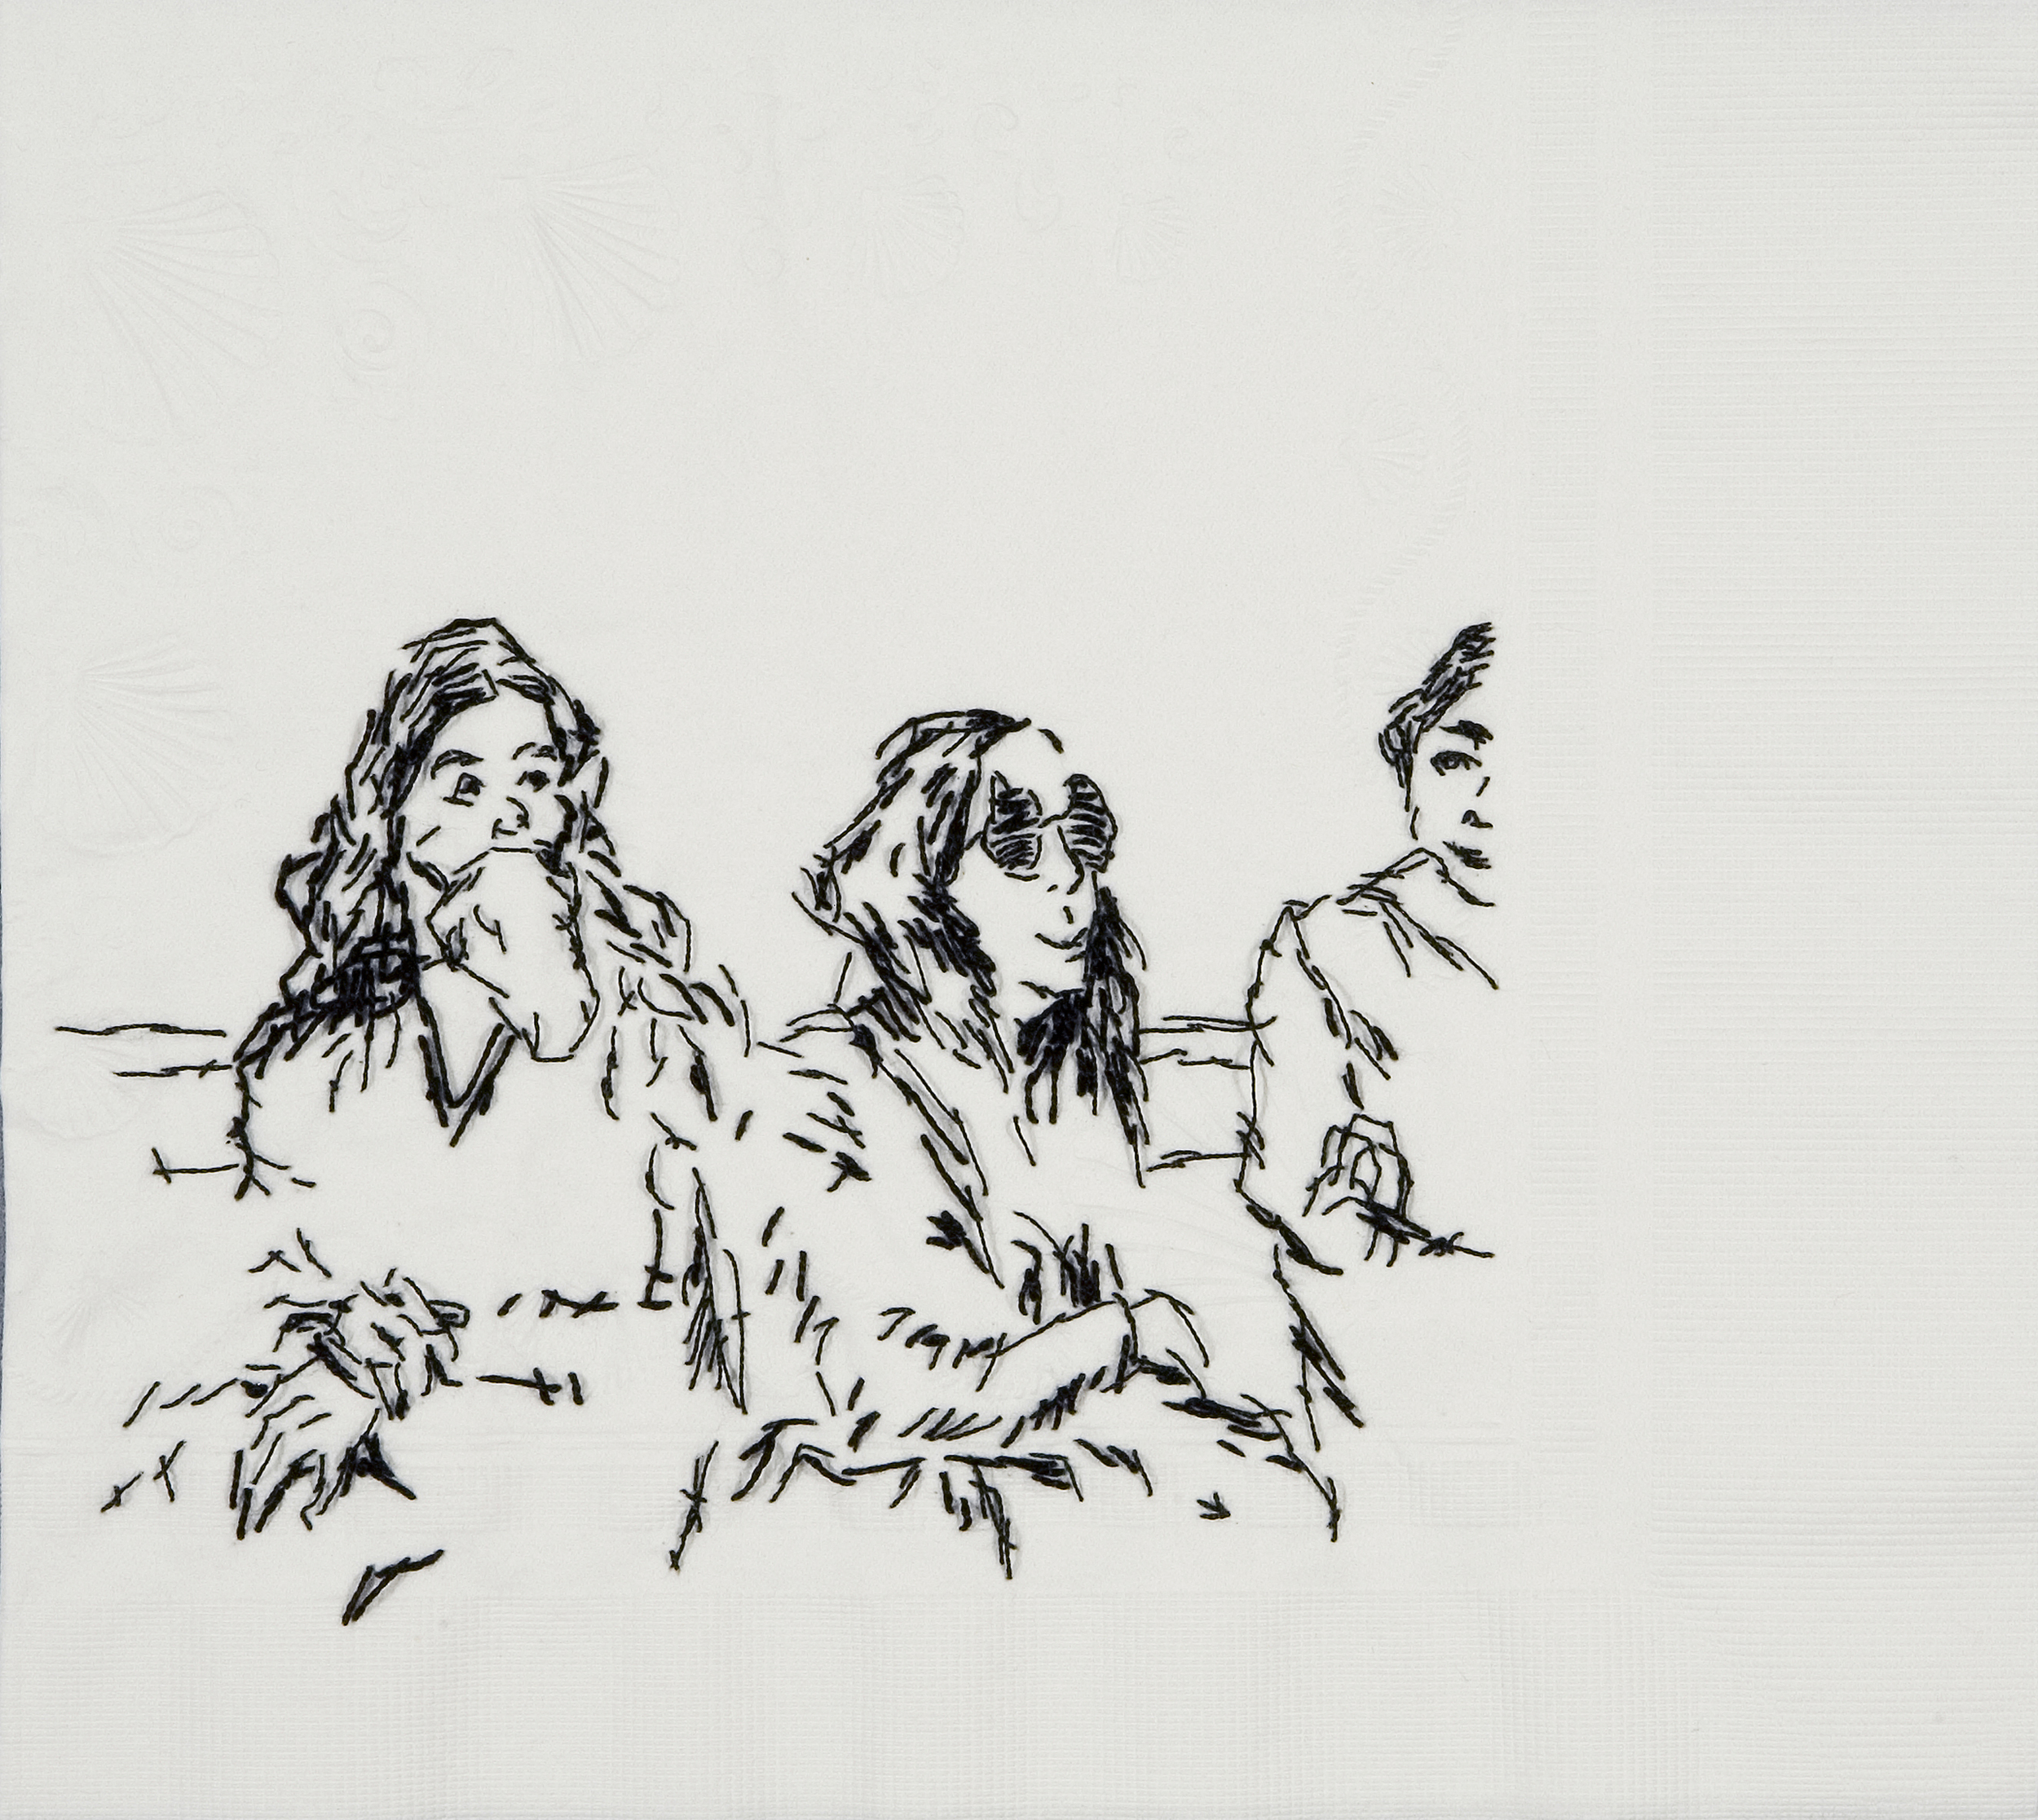 "Sister Wife Adrian (Catalysis III, 1970)  Black thread on paper napkin, 8"" x 8.5"", 2008"